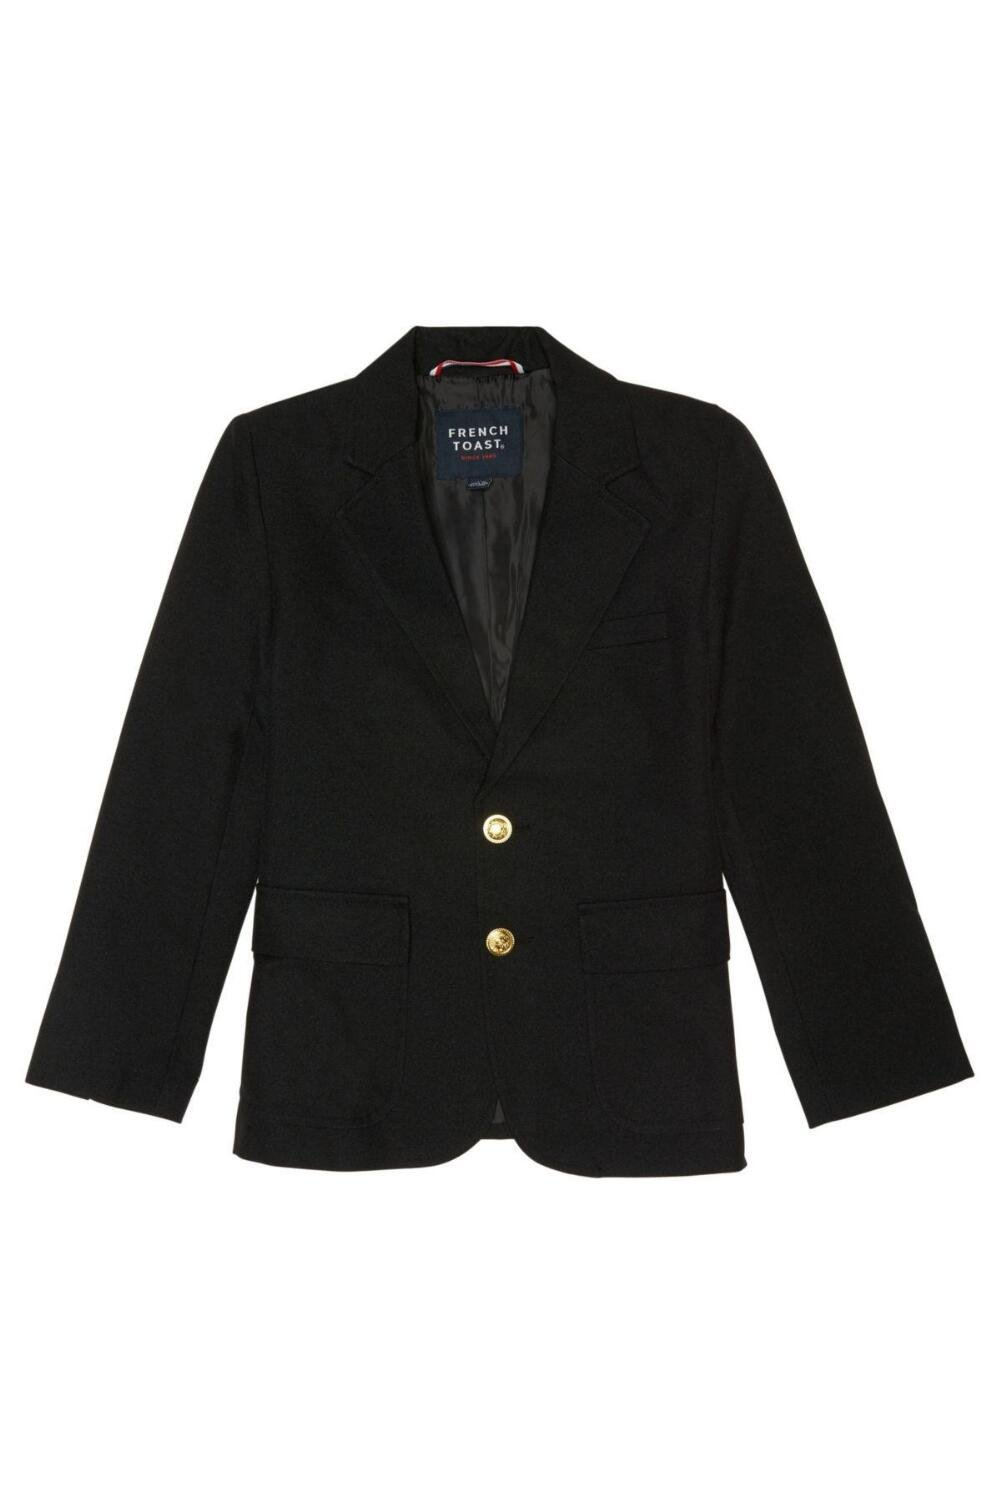 French Toast Little Boys' School Blazer, Black, 7